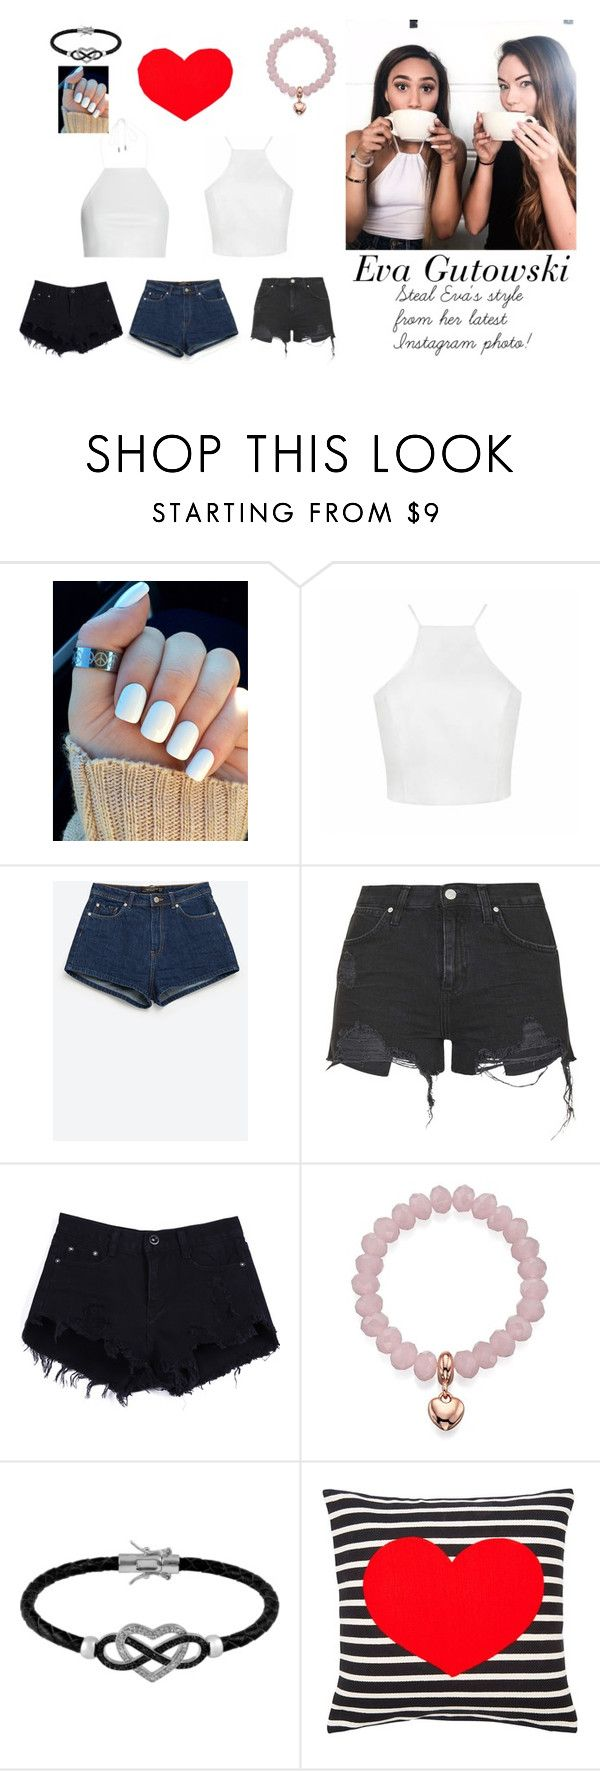 """Eva Gutowski : Her latest Instagram Photo"" by lidage on Polyvore featuring rag & bone, Zara, Topshop, Lipsy, Jewel Exclusive"